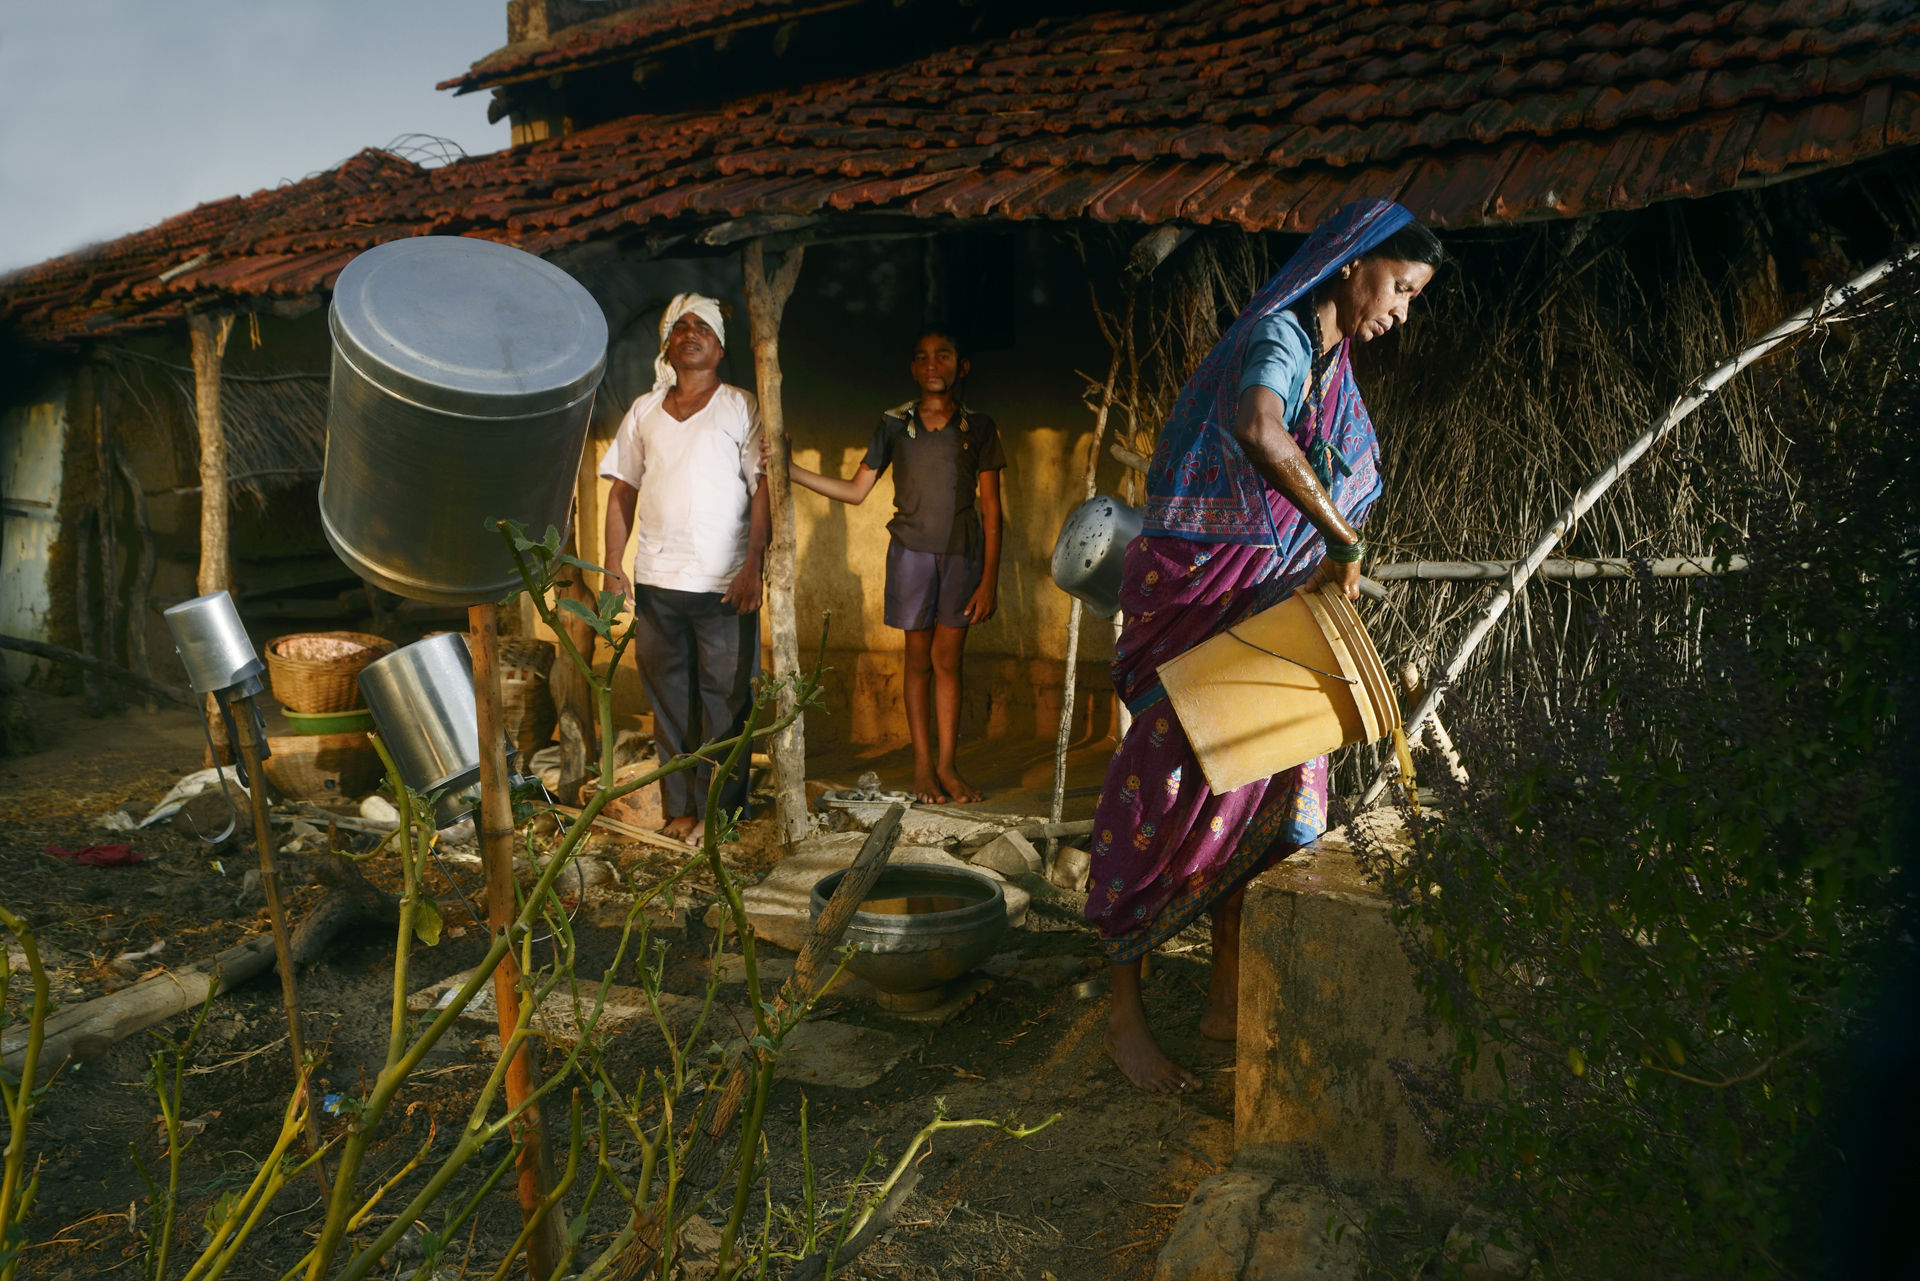 54-year-old Sarawan Tulsi Ram Wadankar   returns home in the evening. His wife pours cow dung into their biogas plant which meets their cooking gas requirements.